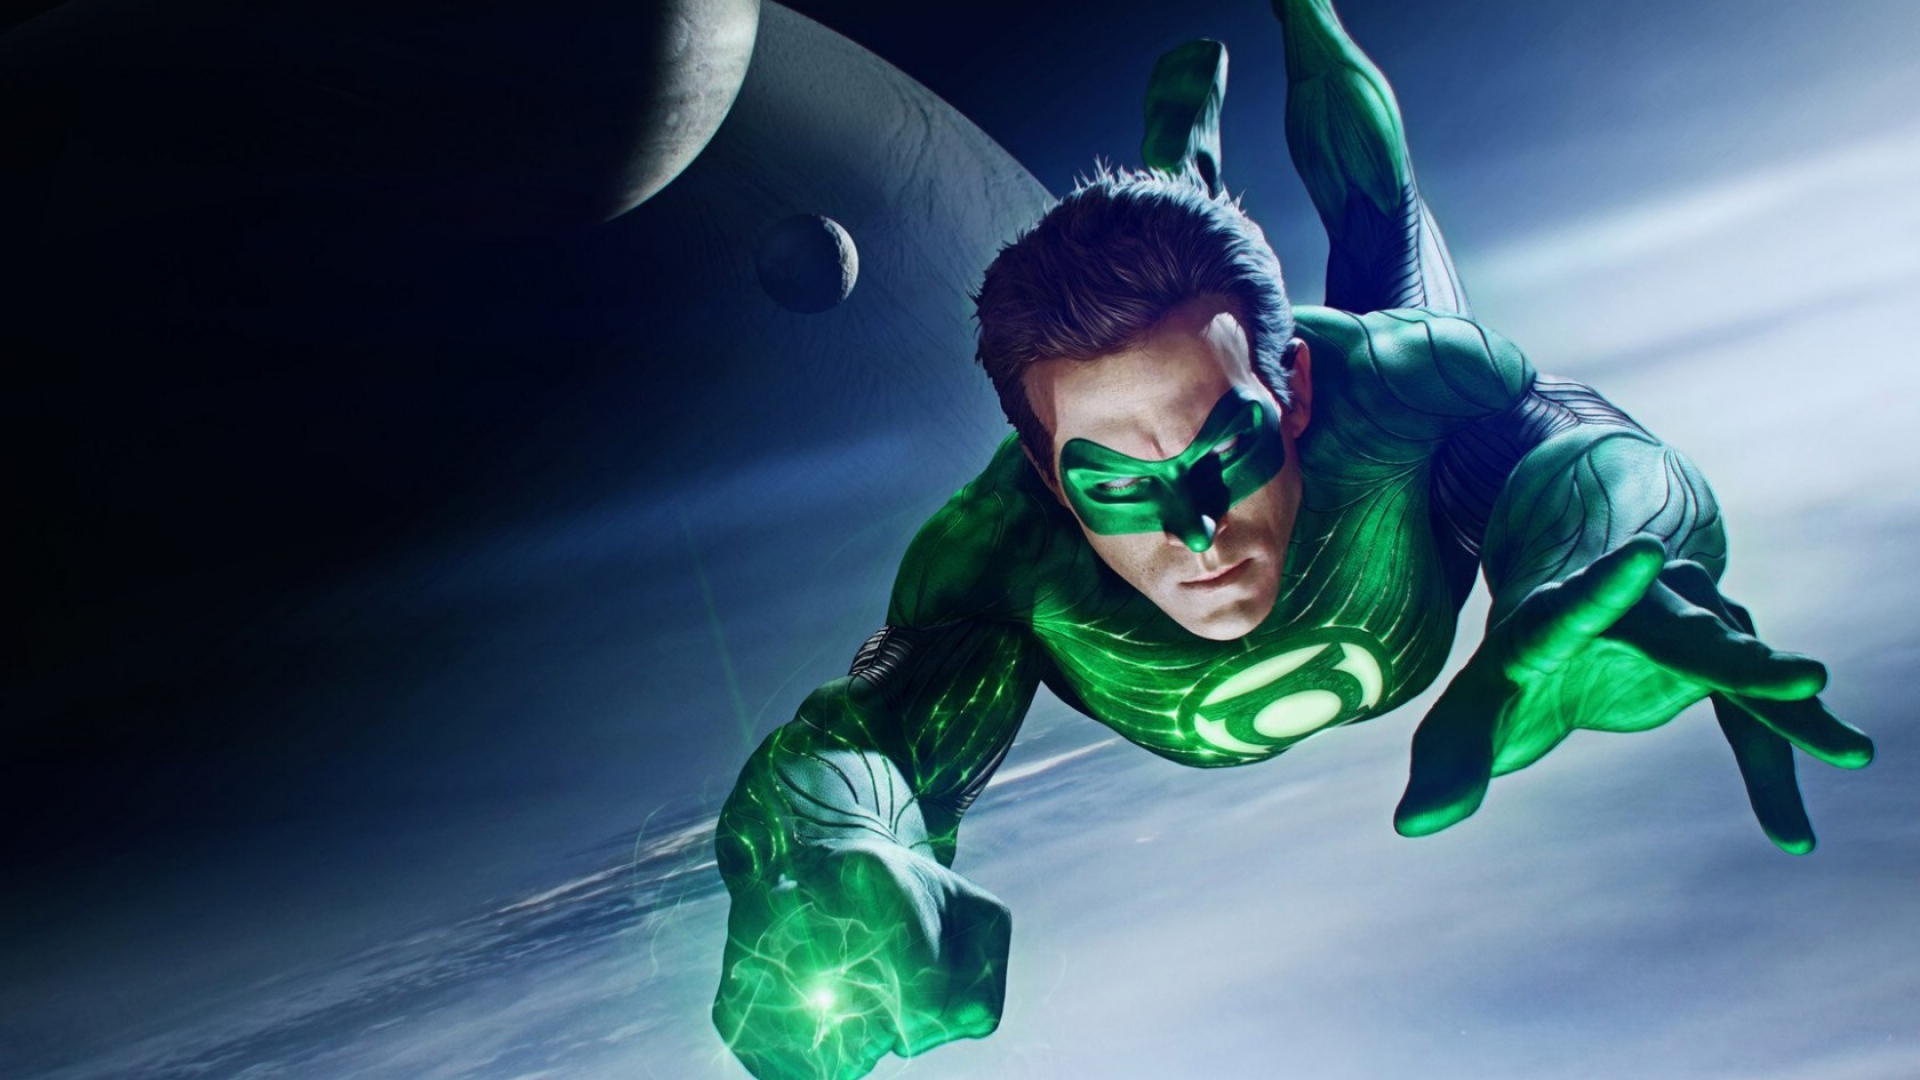 Green Lantern Comic Wallpaper: Green Lantern Wallpapers Images Photos Pictures Backgrounds